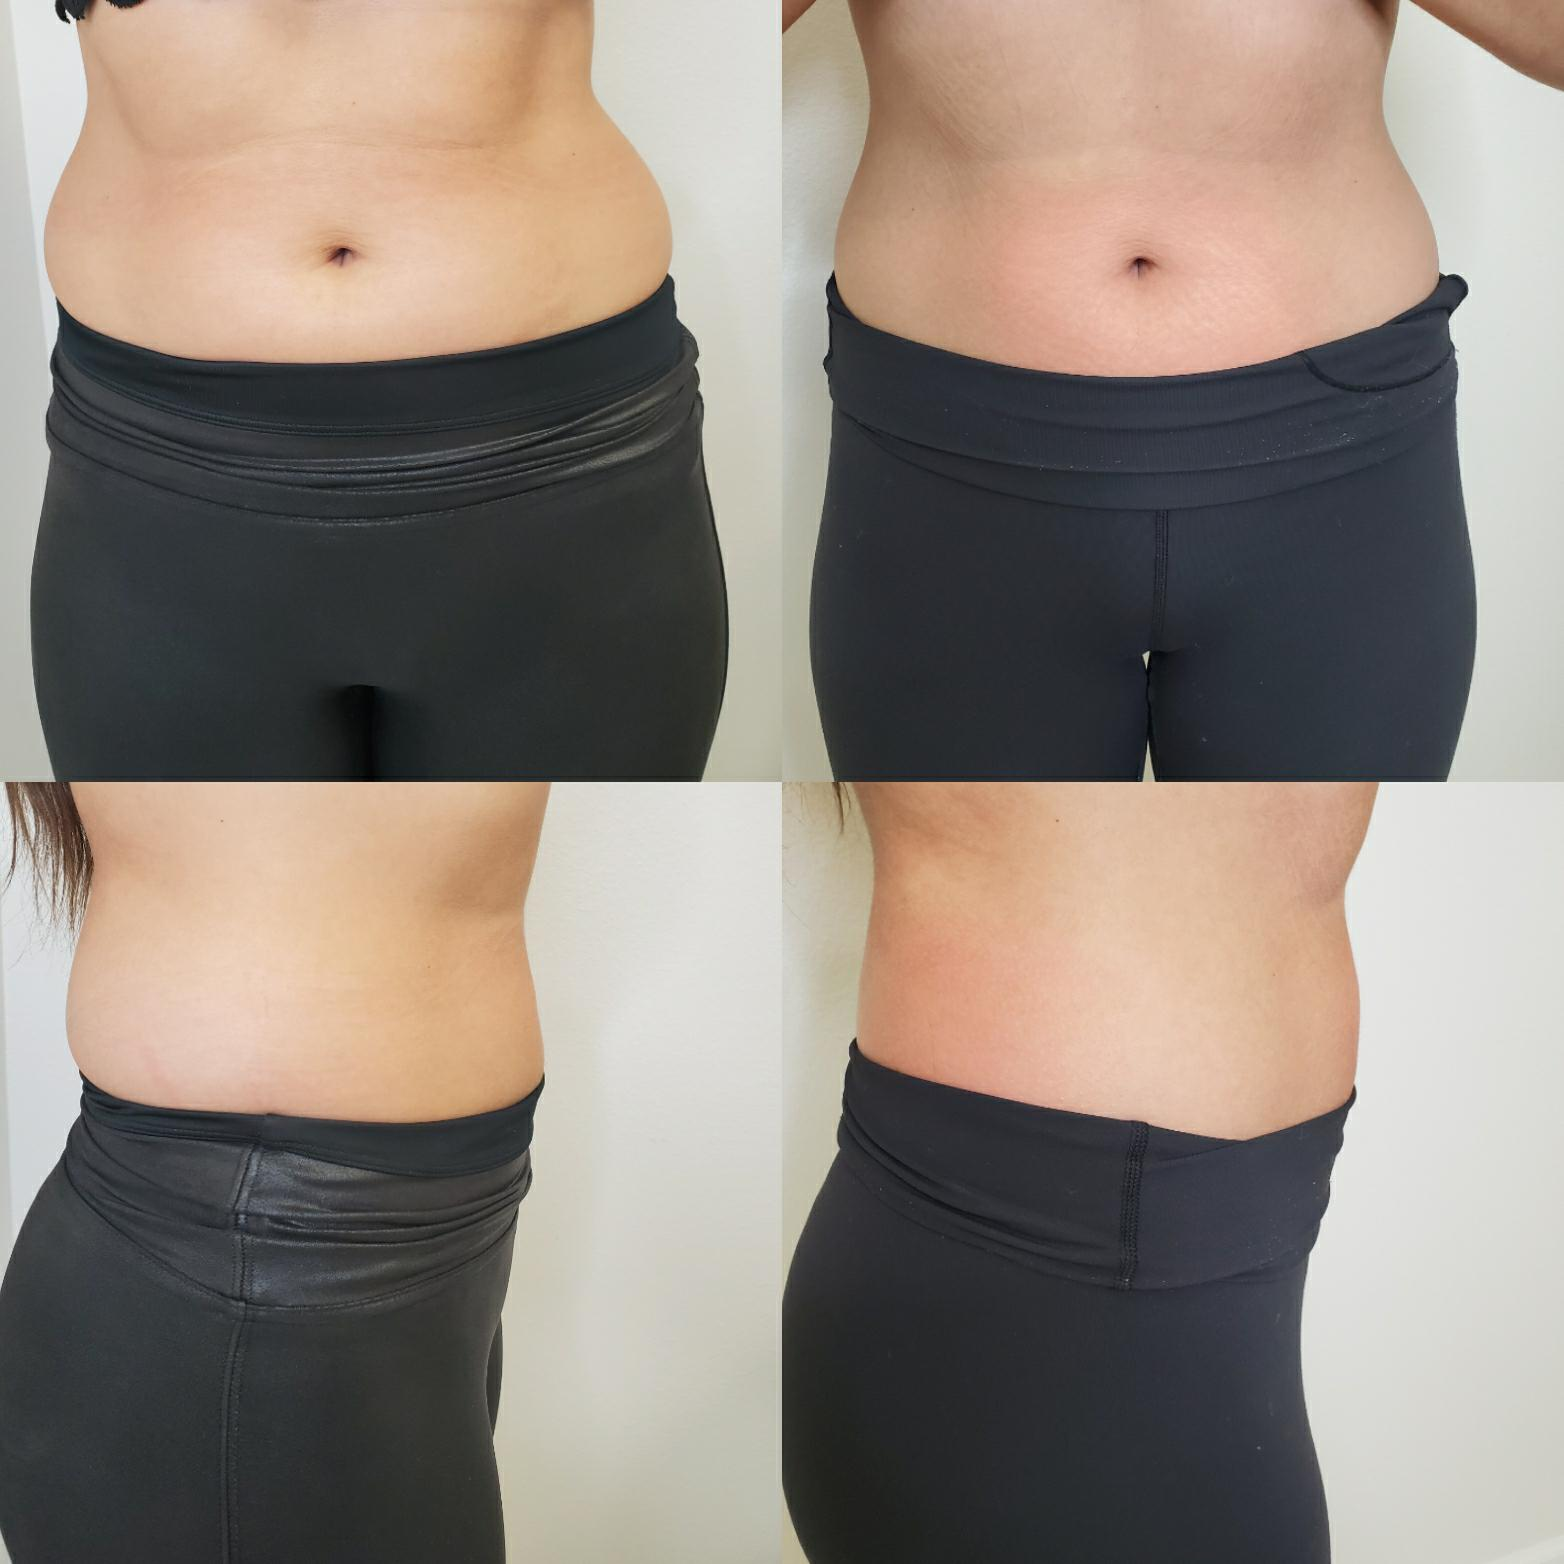 cryoslimming after 3 treatments